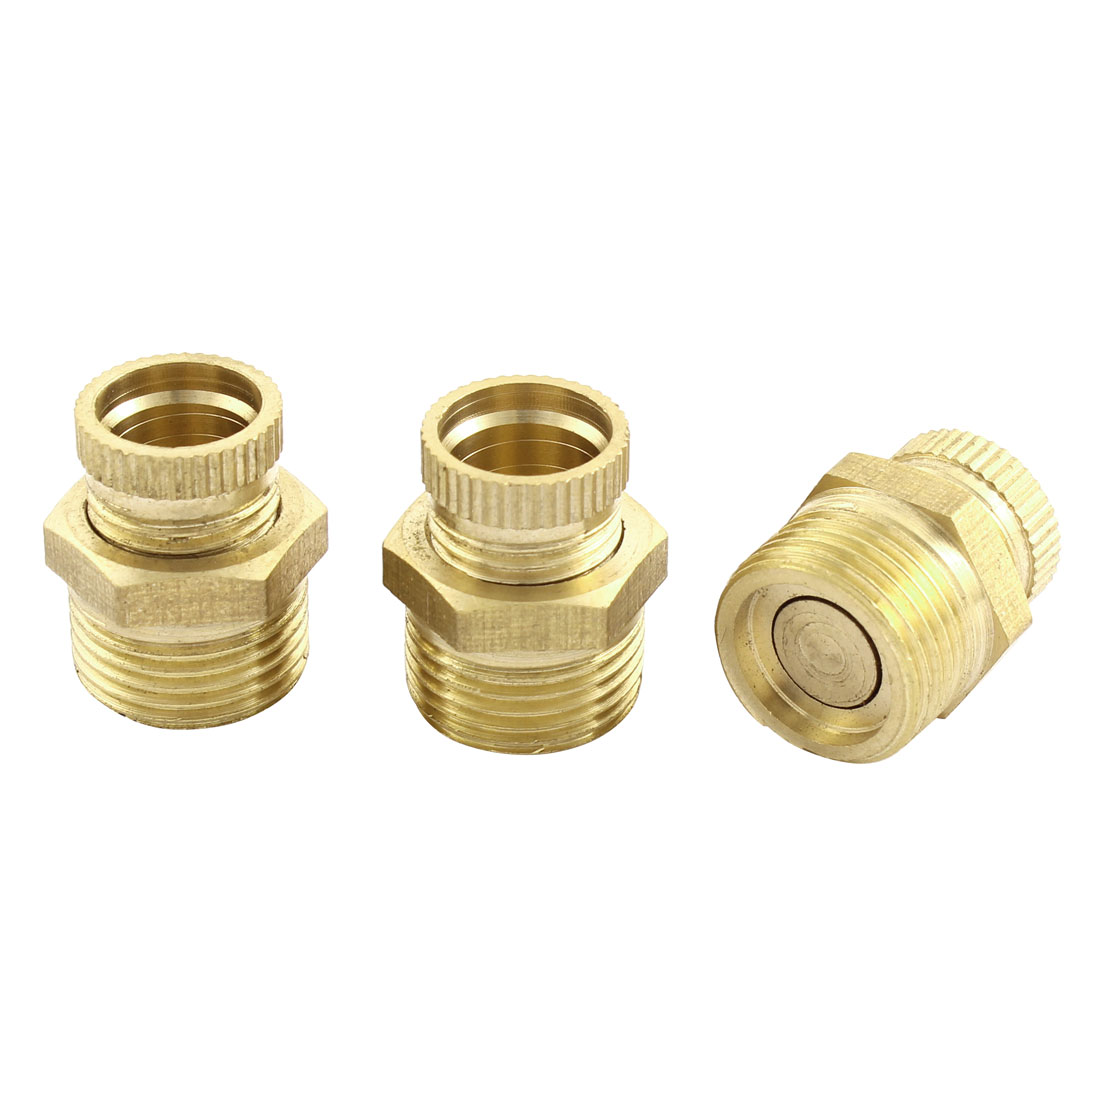 Air Compressor 16mm Male Thread Dia Security Water Drain Valve Brass Tone 3 Pcs